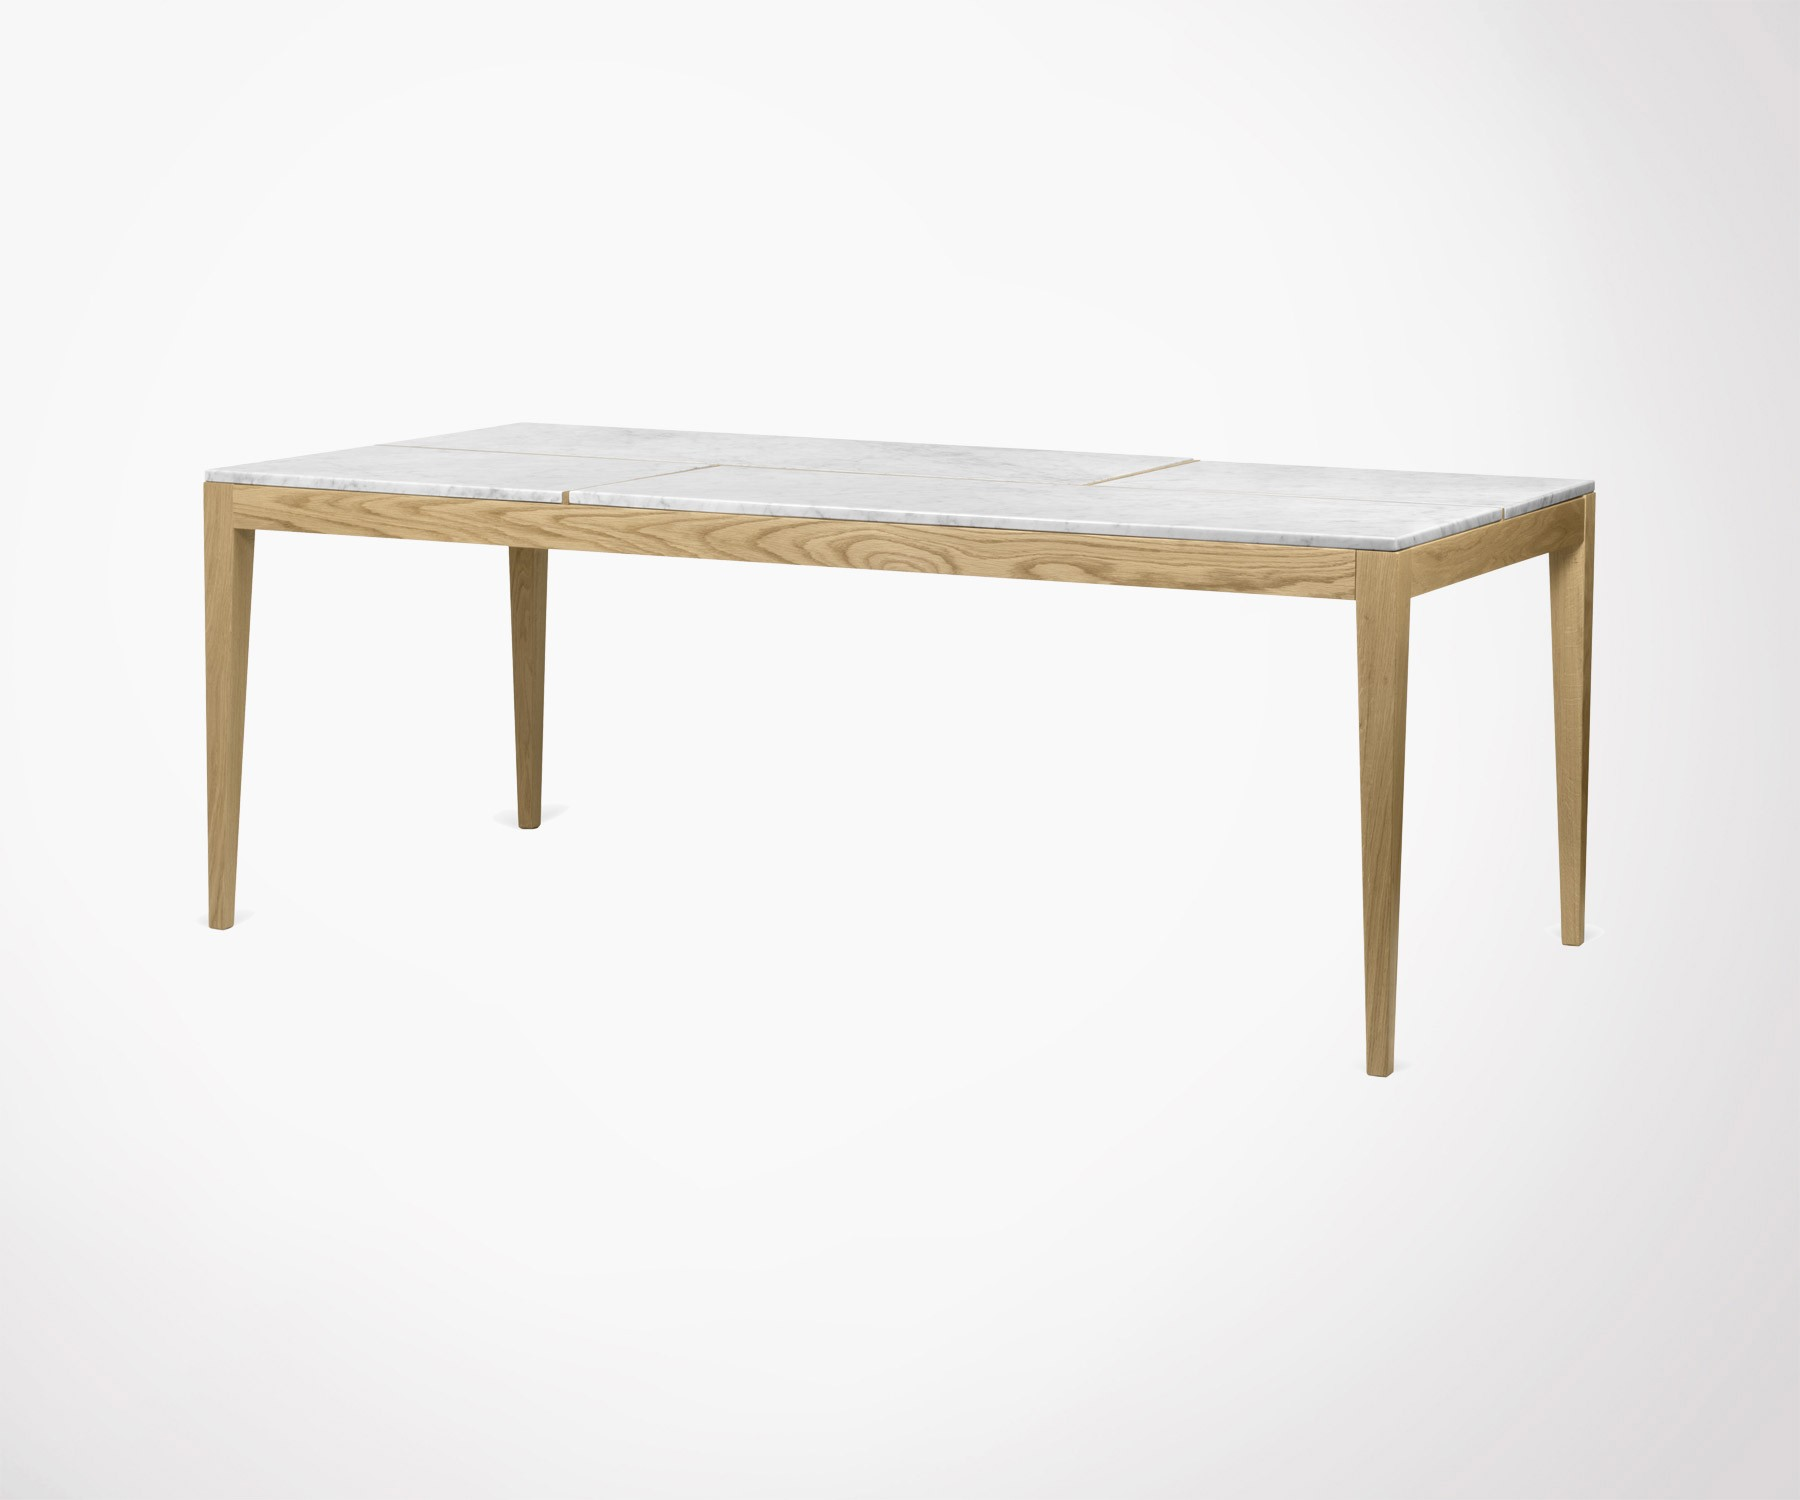 Grande table a manger grande table carr e salle manger for Grande table a manger